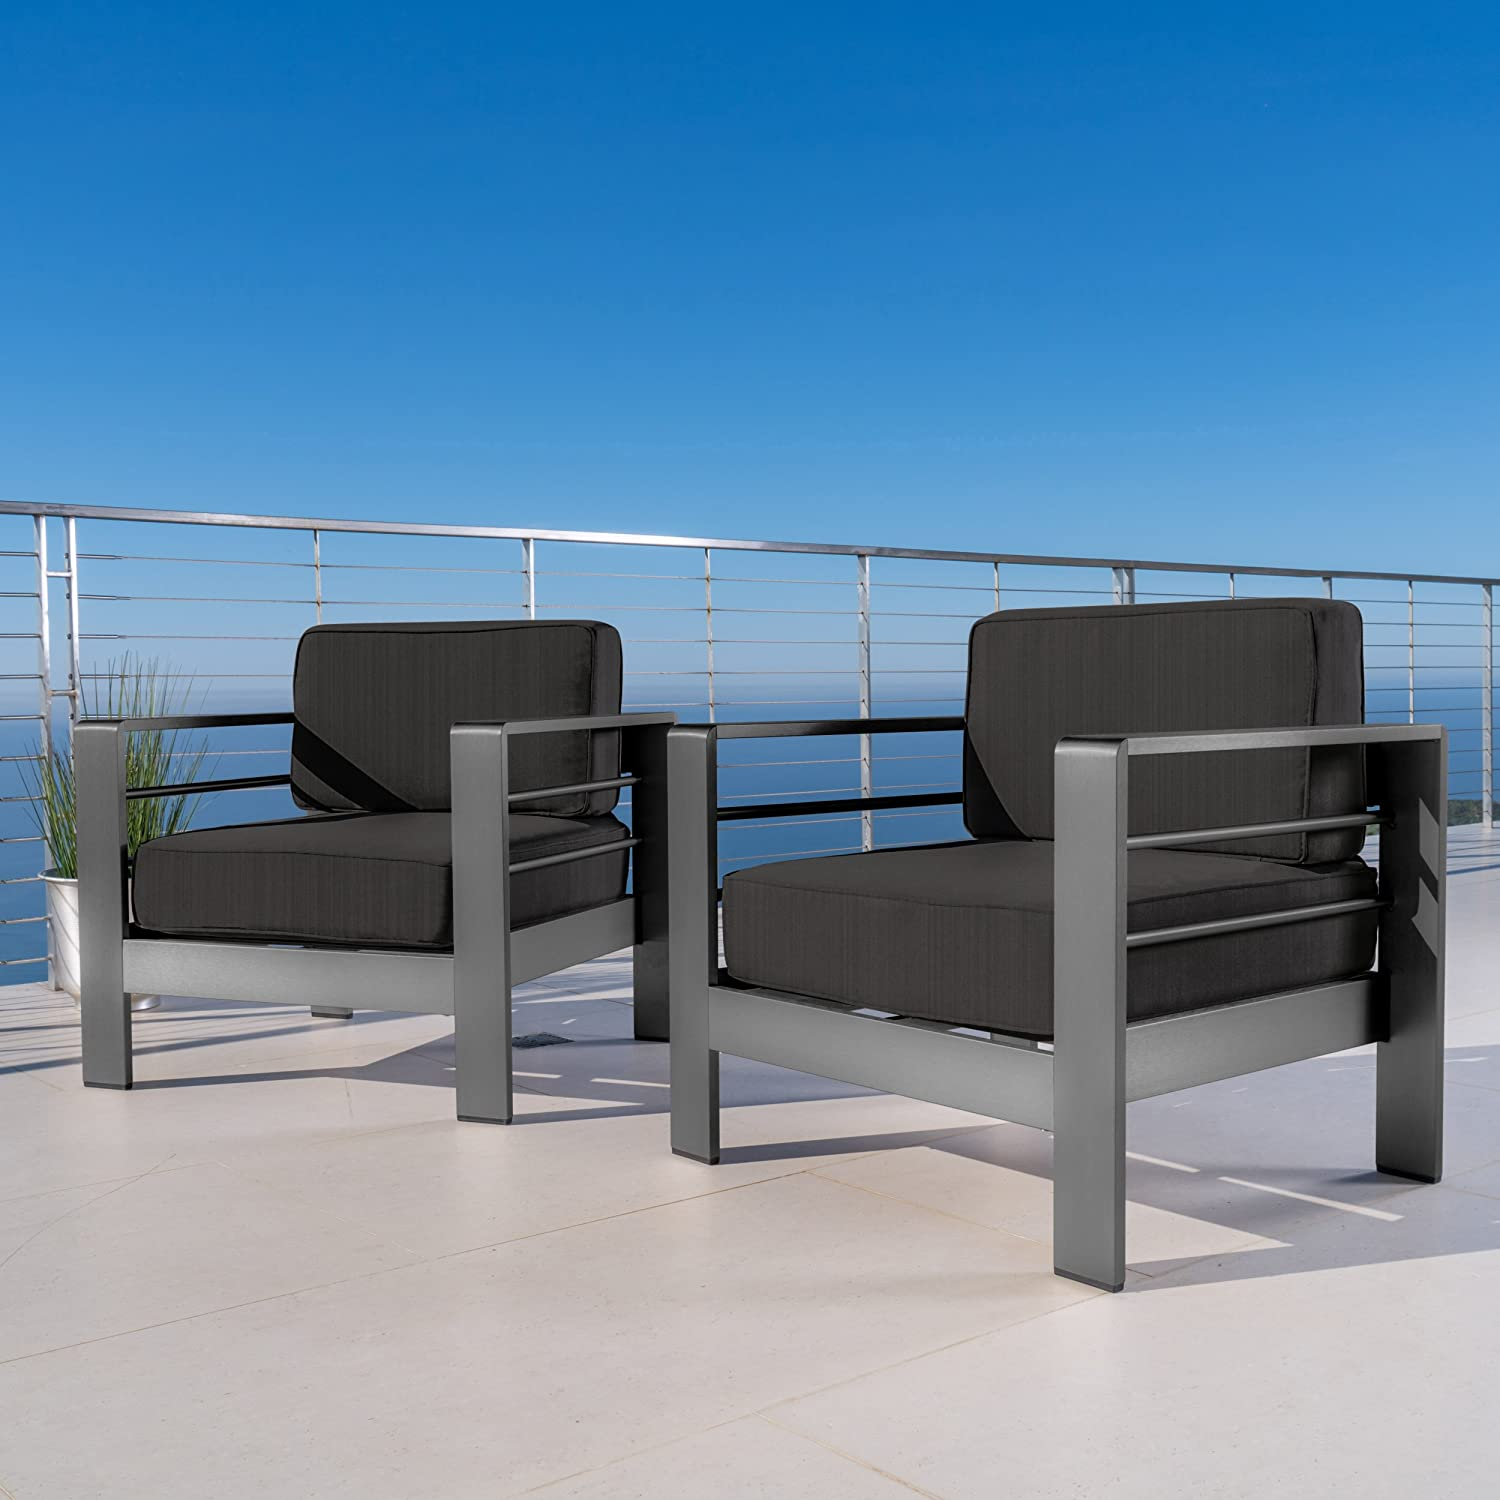 Christopher Knight Home Crested Bay Patio Furniture | Outdoor Grey Aluminum Club Chairs with Dark Grey Water Resistant Cushions (Set of 2)